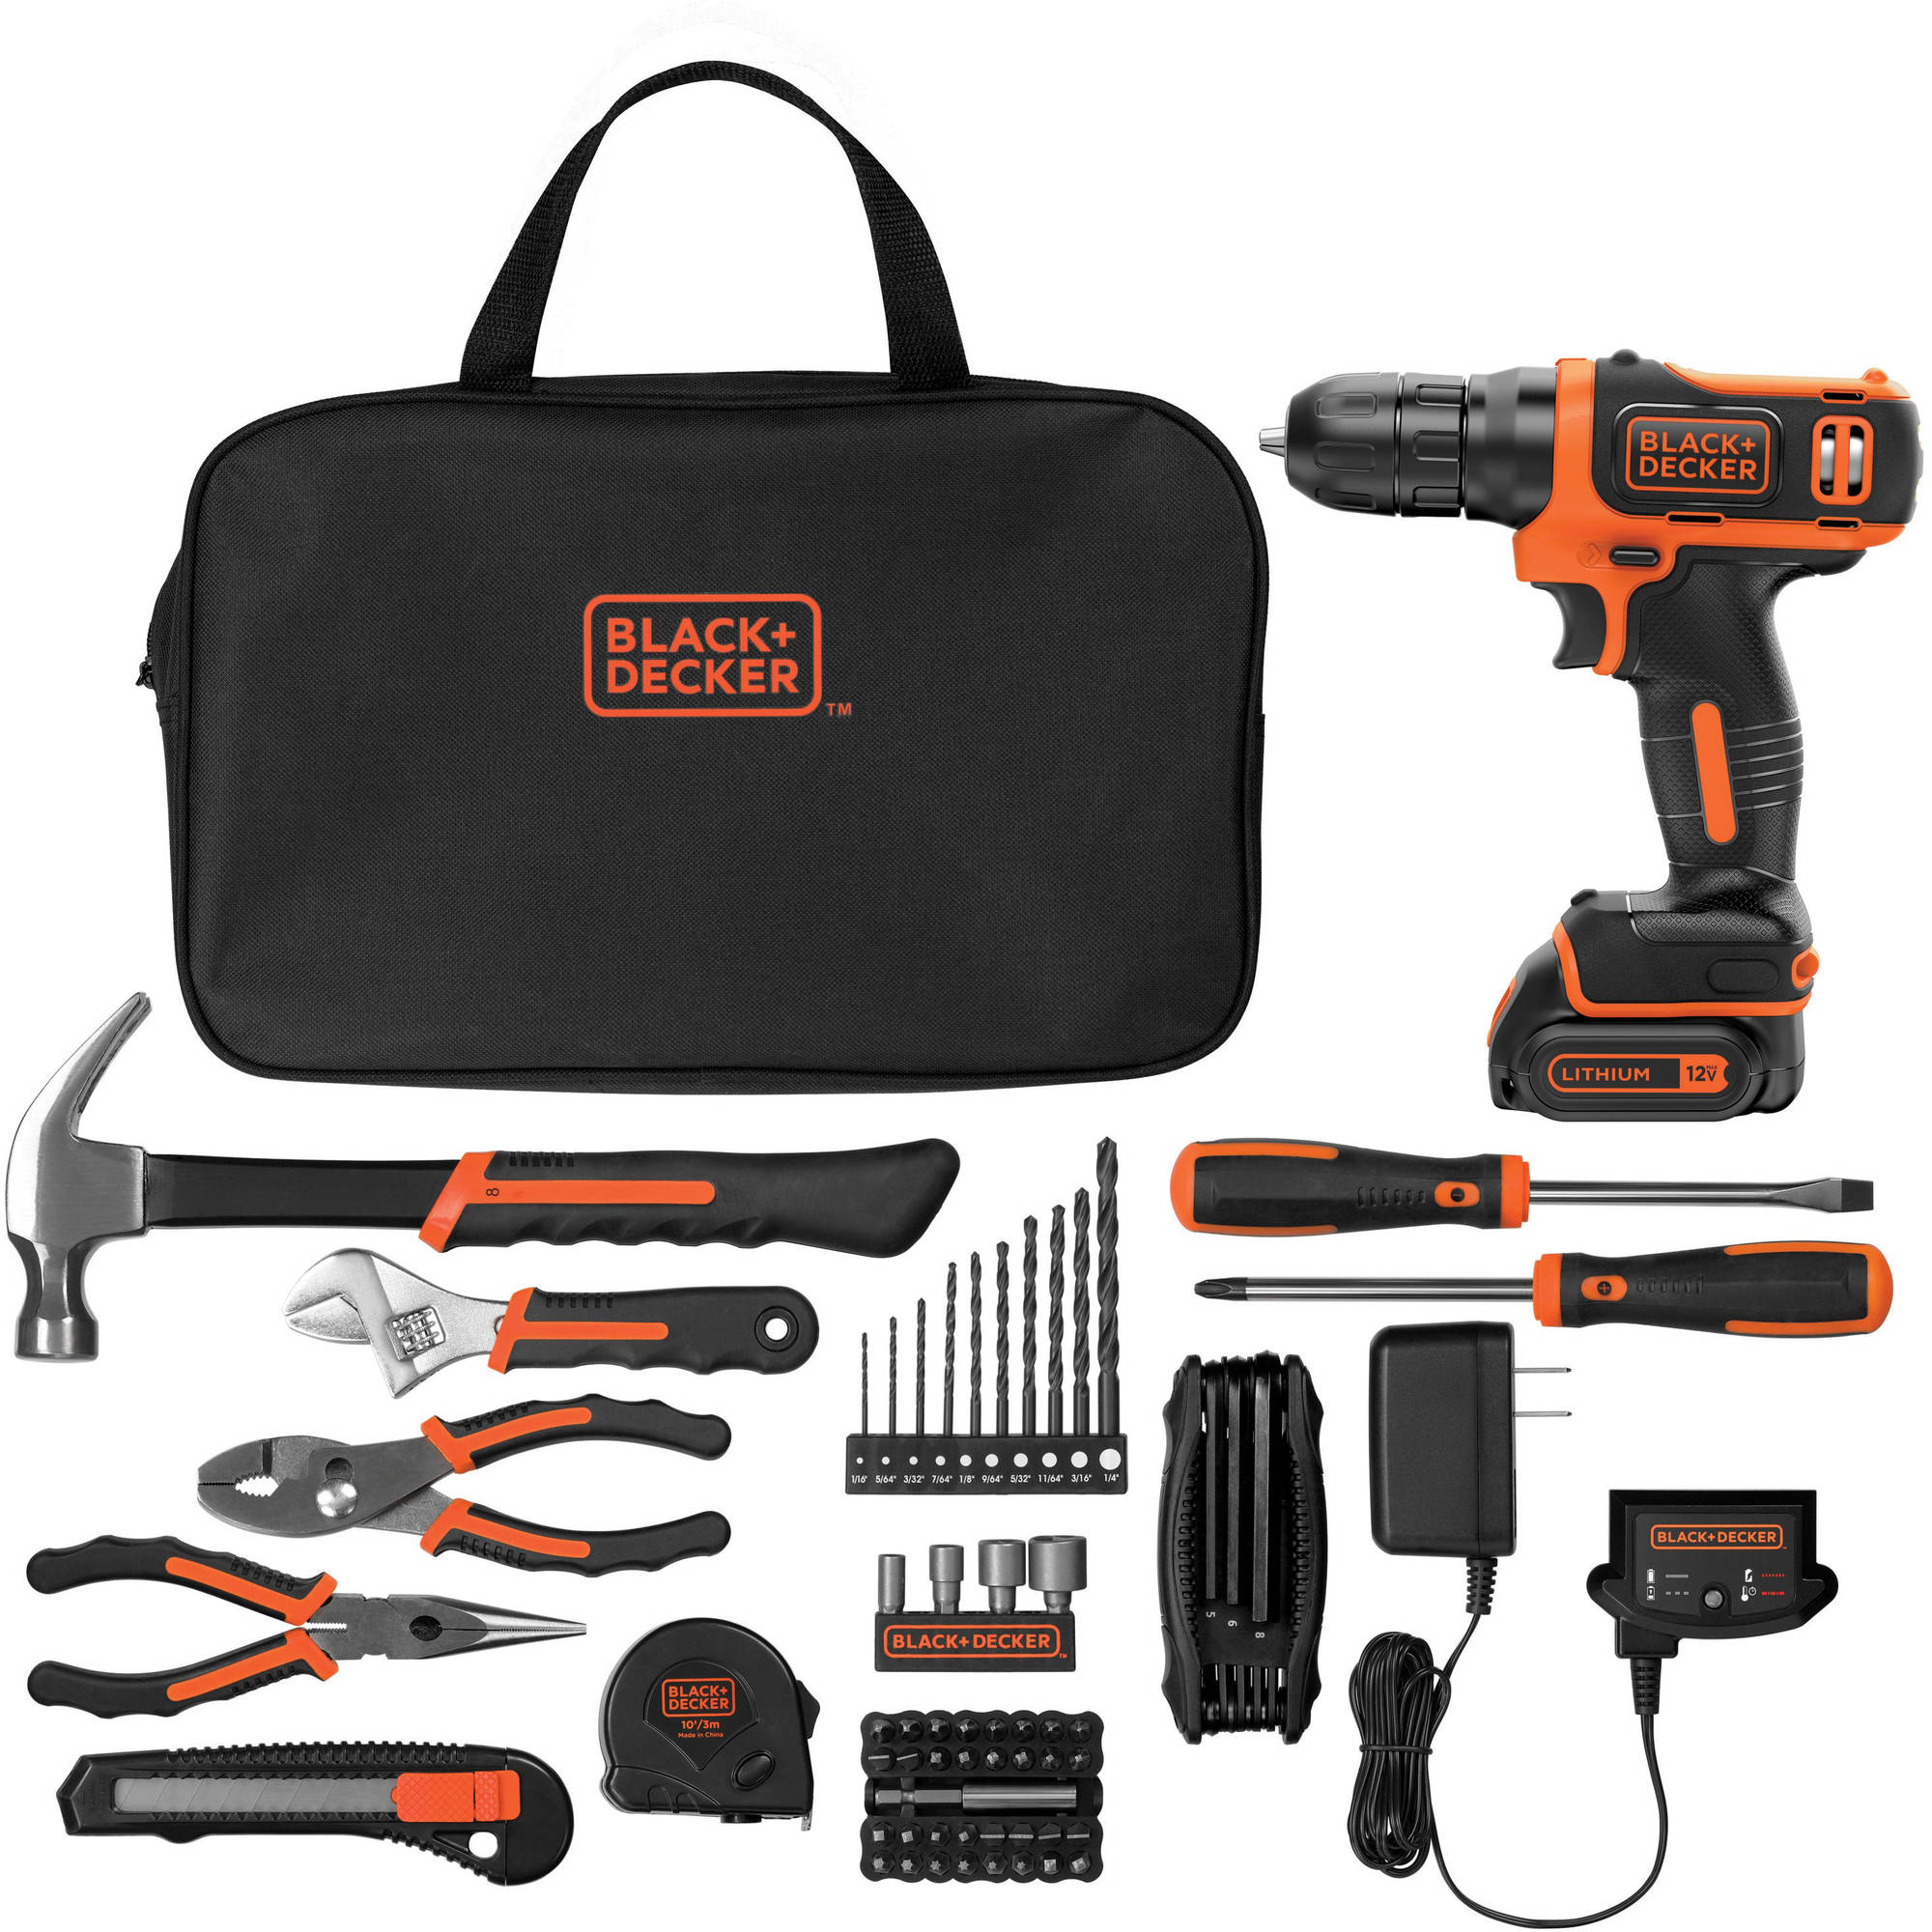 BLACK+DECKER 12-Volt MAX Lithium Ion Cordless Drill with 64-Piece Project Kit